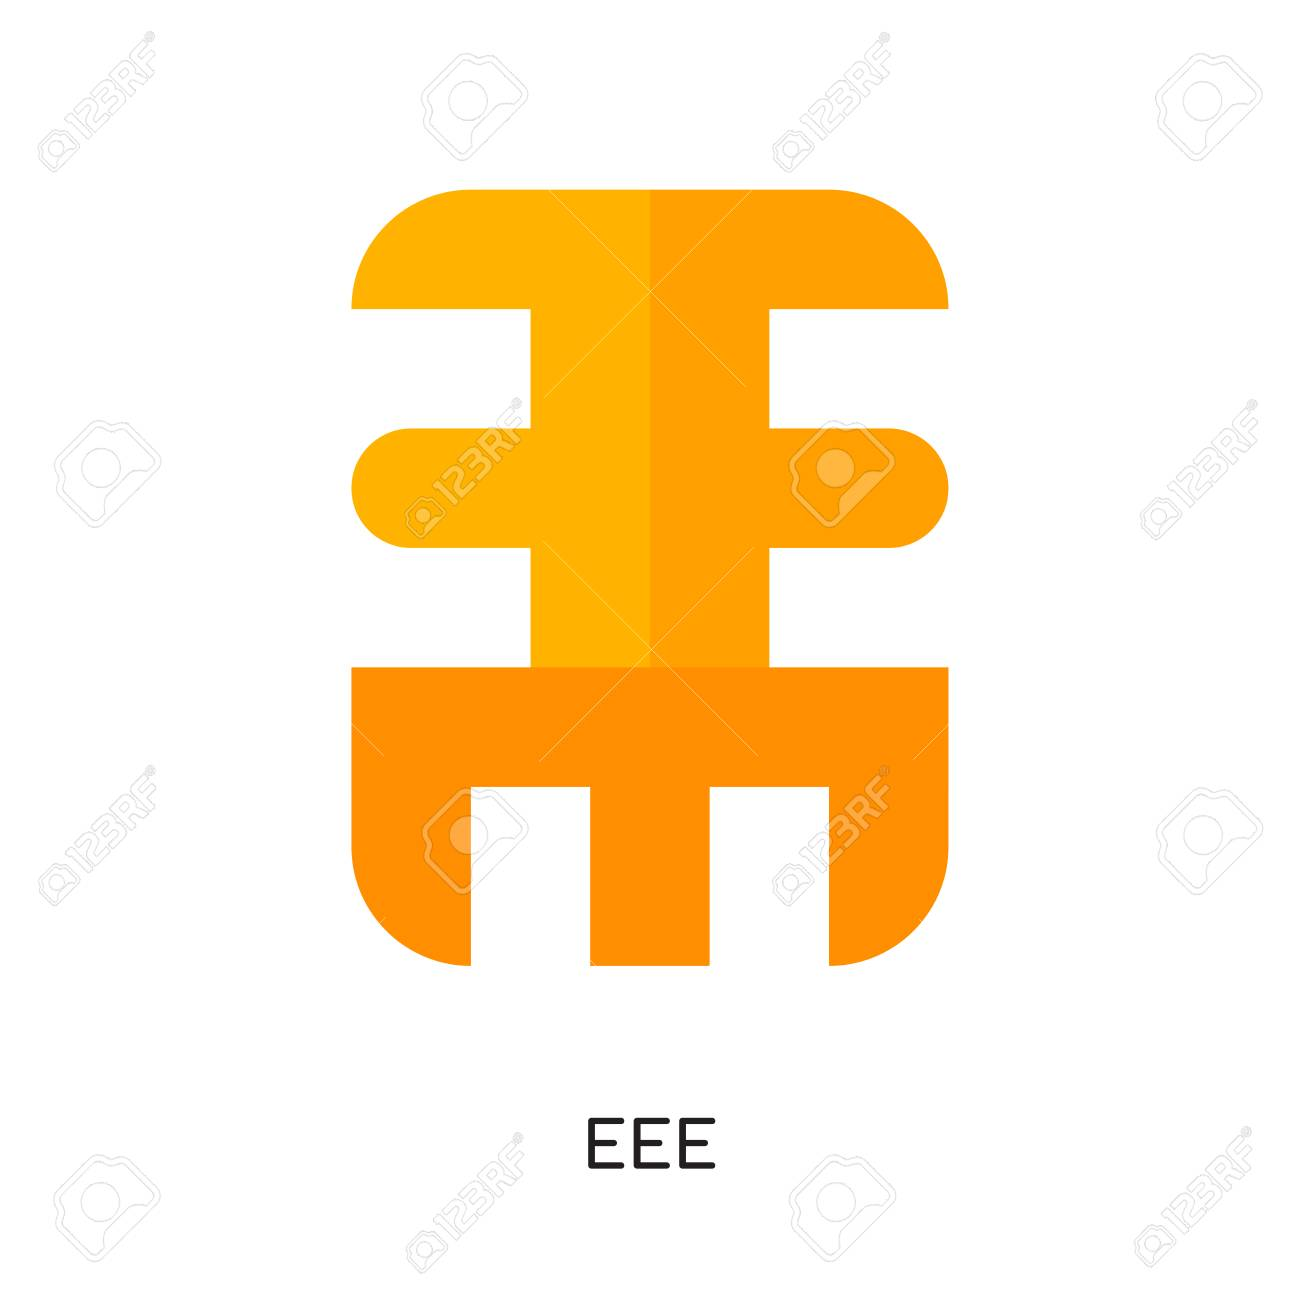 eee logo isolated on white background for your web and mobile